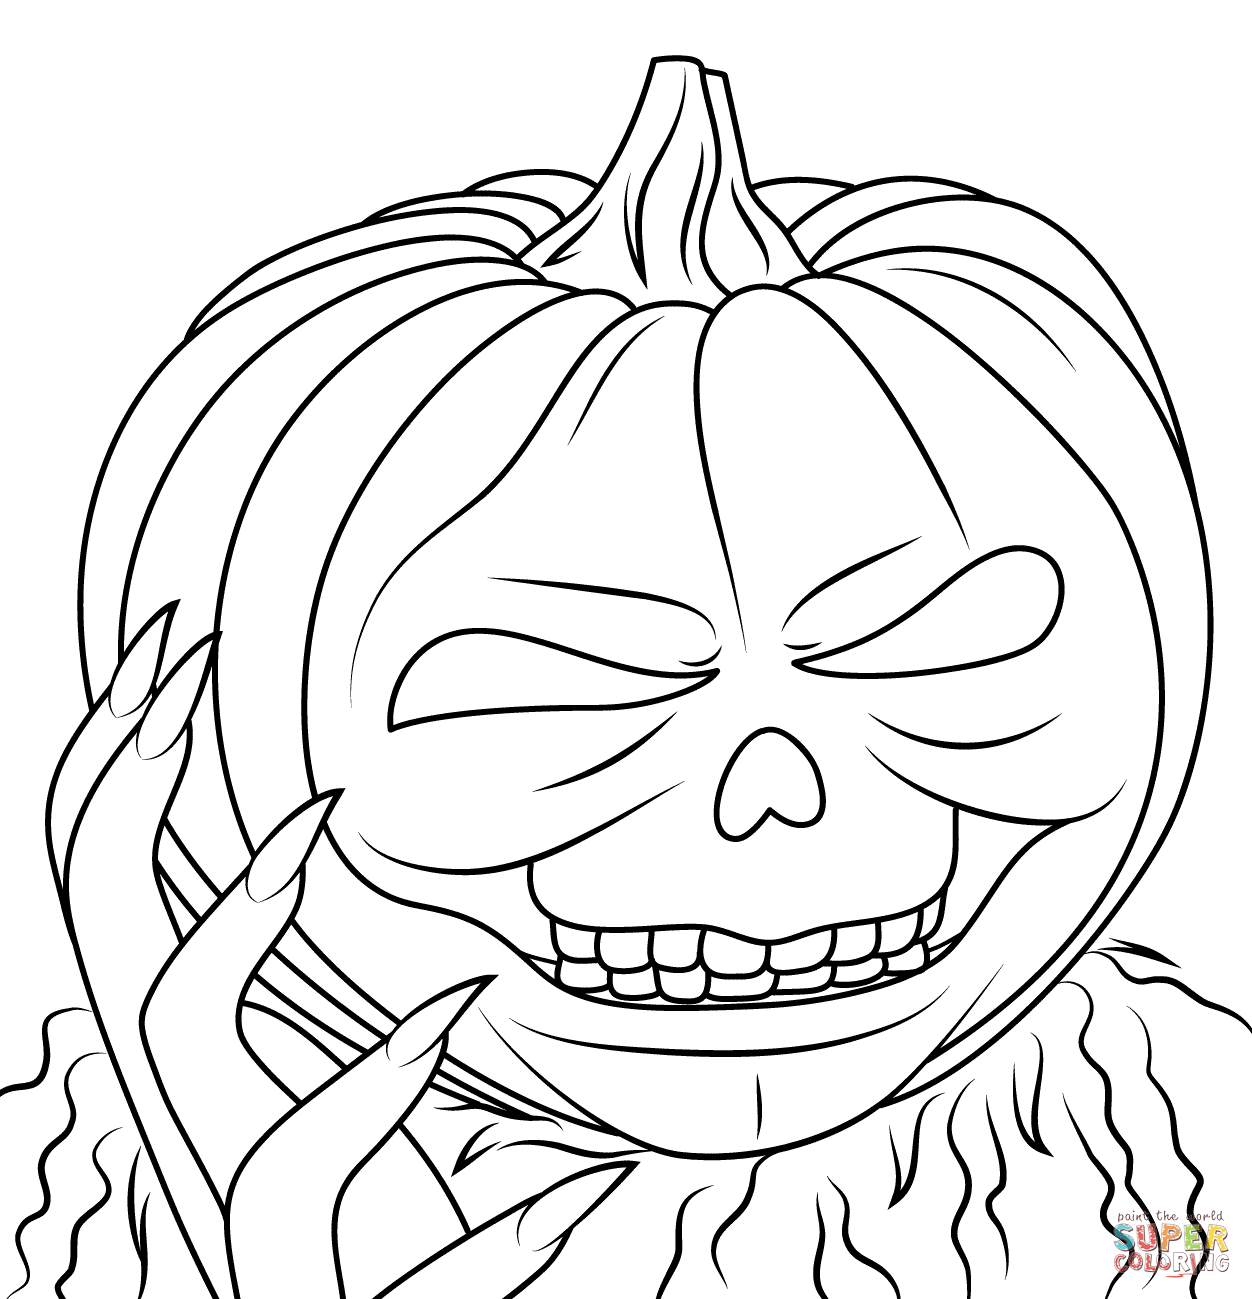 1252x1299 Goosebumps Coloring Pages To Print You Might Also Be Interested